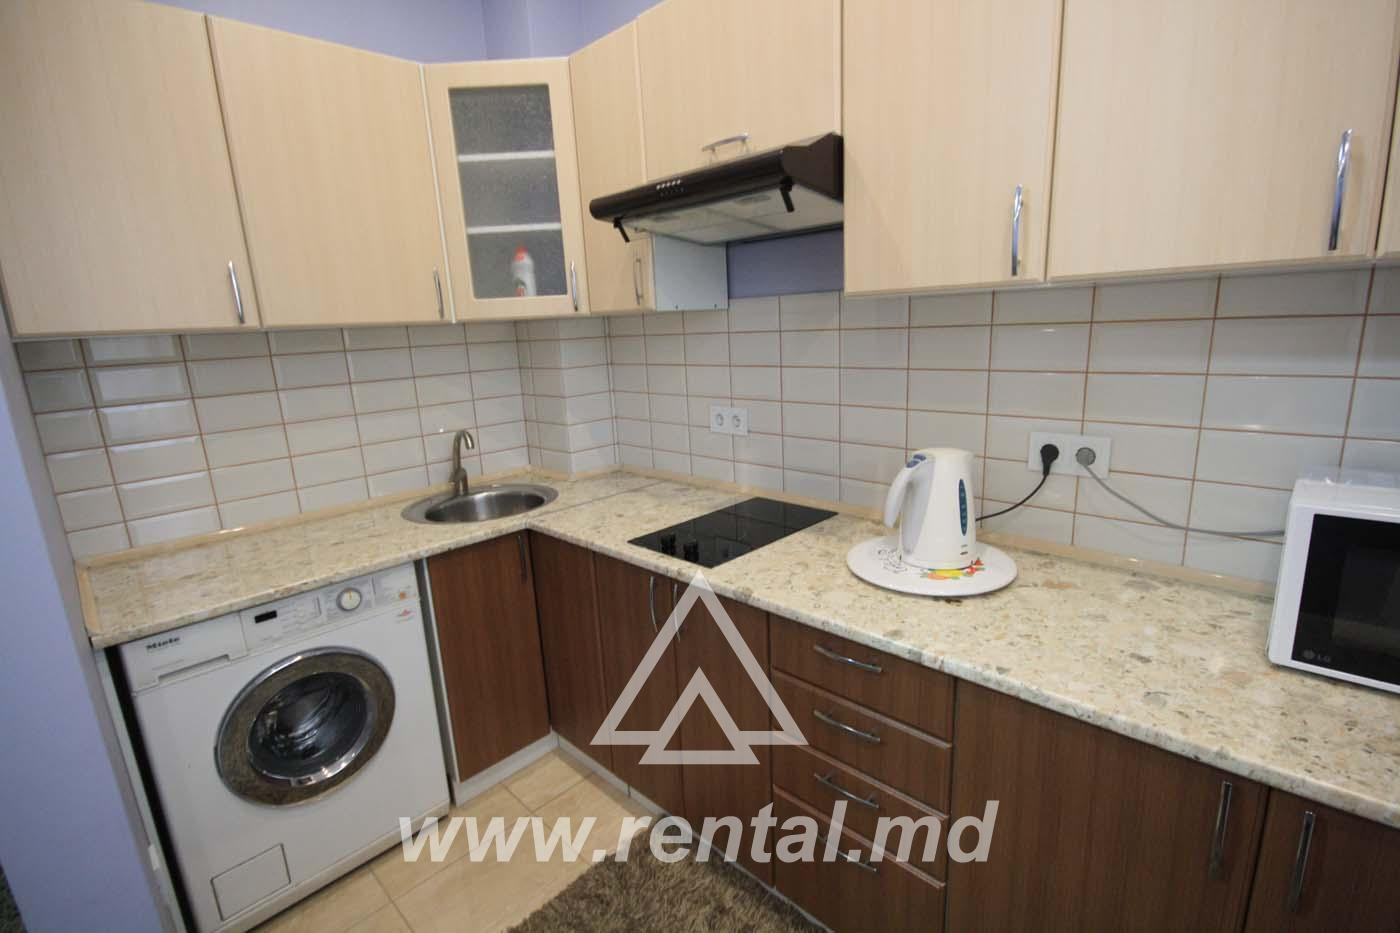 2-rooms apartment in Chisinau for daily rent